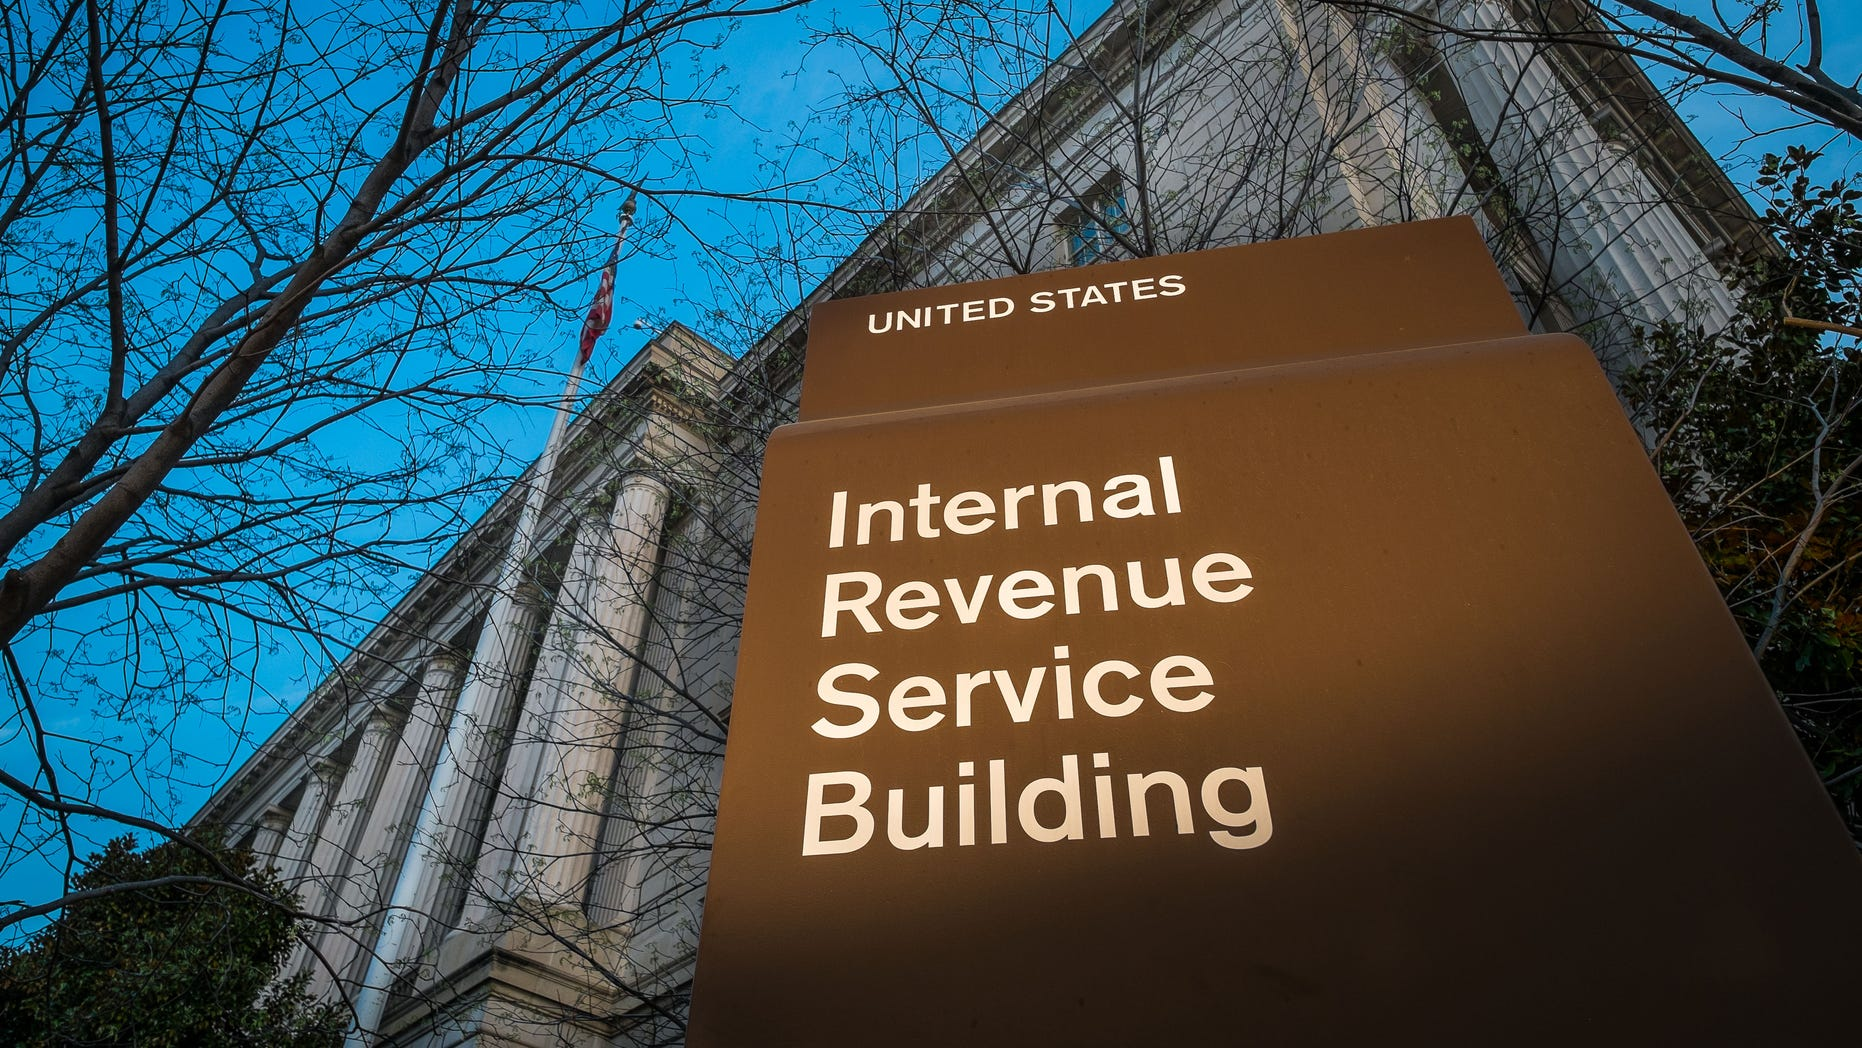 Irs To Delay Tax Refunds For Millions Of Low Income Families Fox News Wiring Money Internationally April 13 2014 The Headquarters Internal Revenue Service In